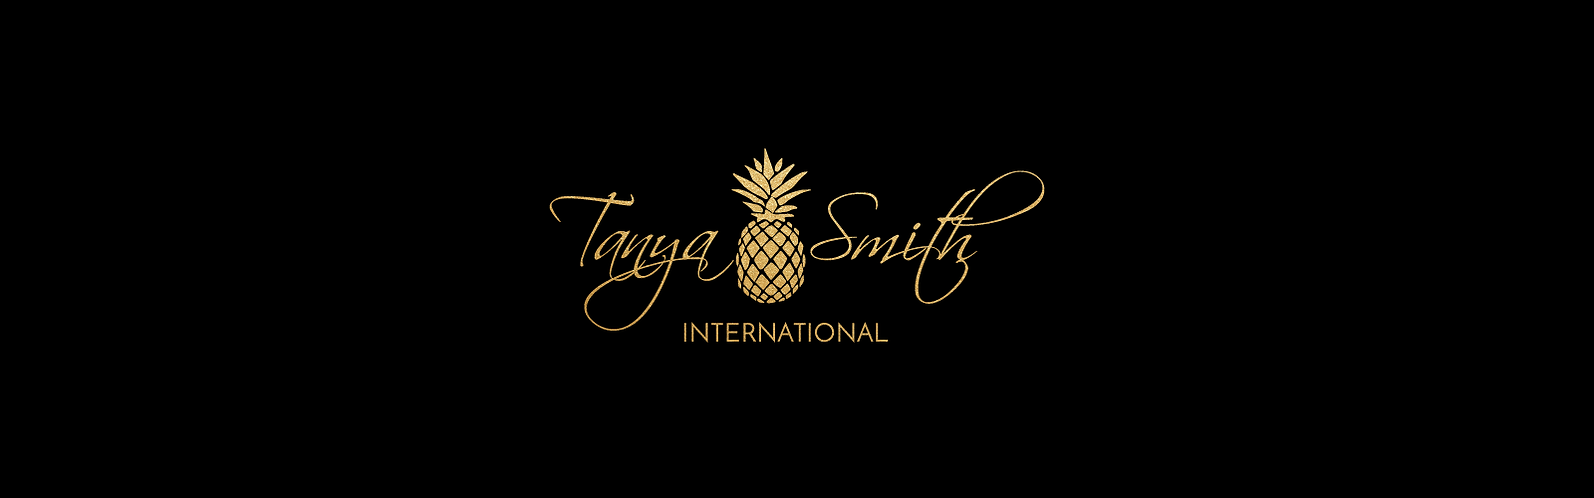 tanya smith international banner